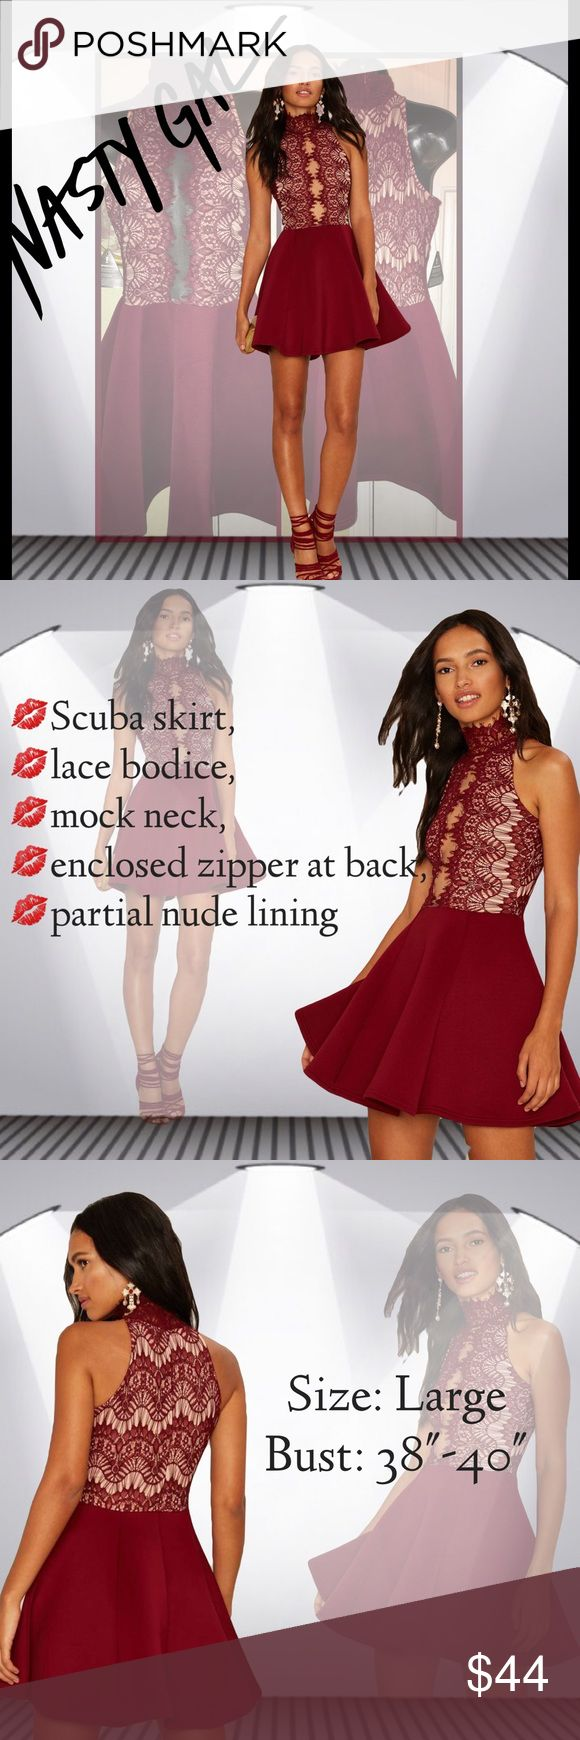 Nasty Gal Rare London Court Mesh Scuba Dress Sz. L The Hold Court Dress is burgundy and features a scuba skirt, lace bodice, mock neck, enclosed zipper at back, and partial nude lining. By Rare London. Nasty Gal Dresses Mini